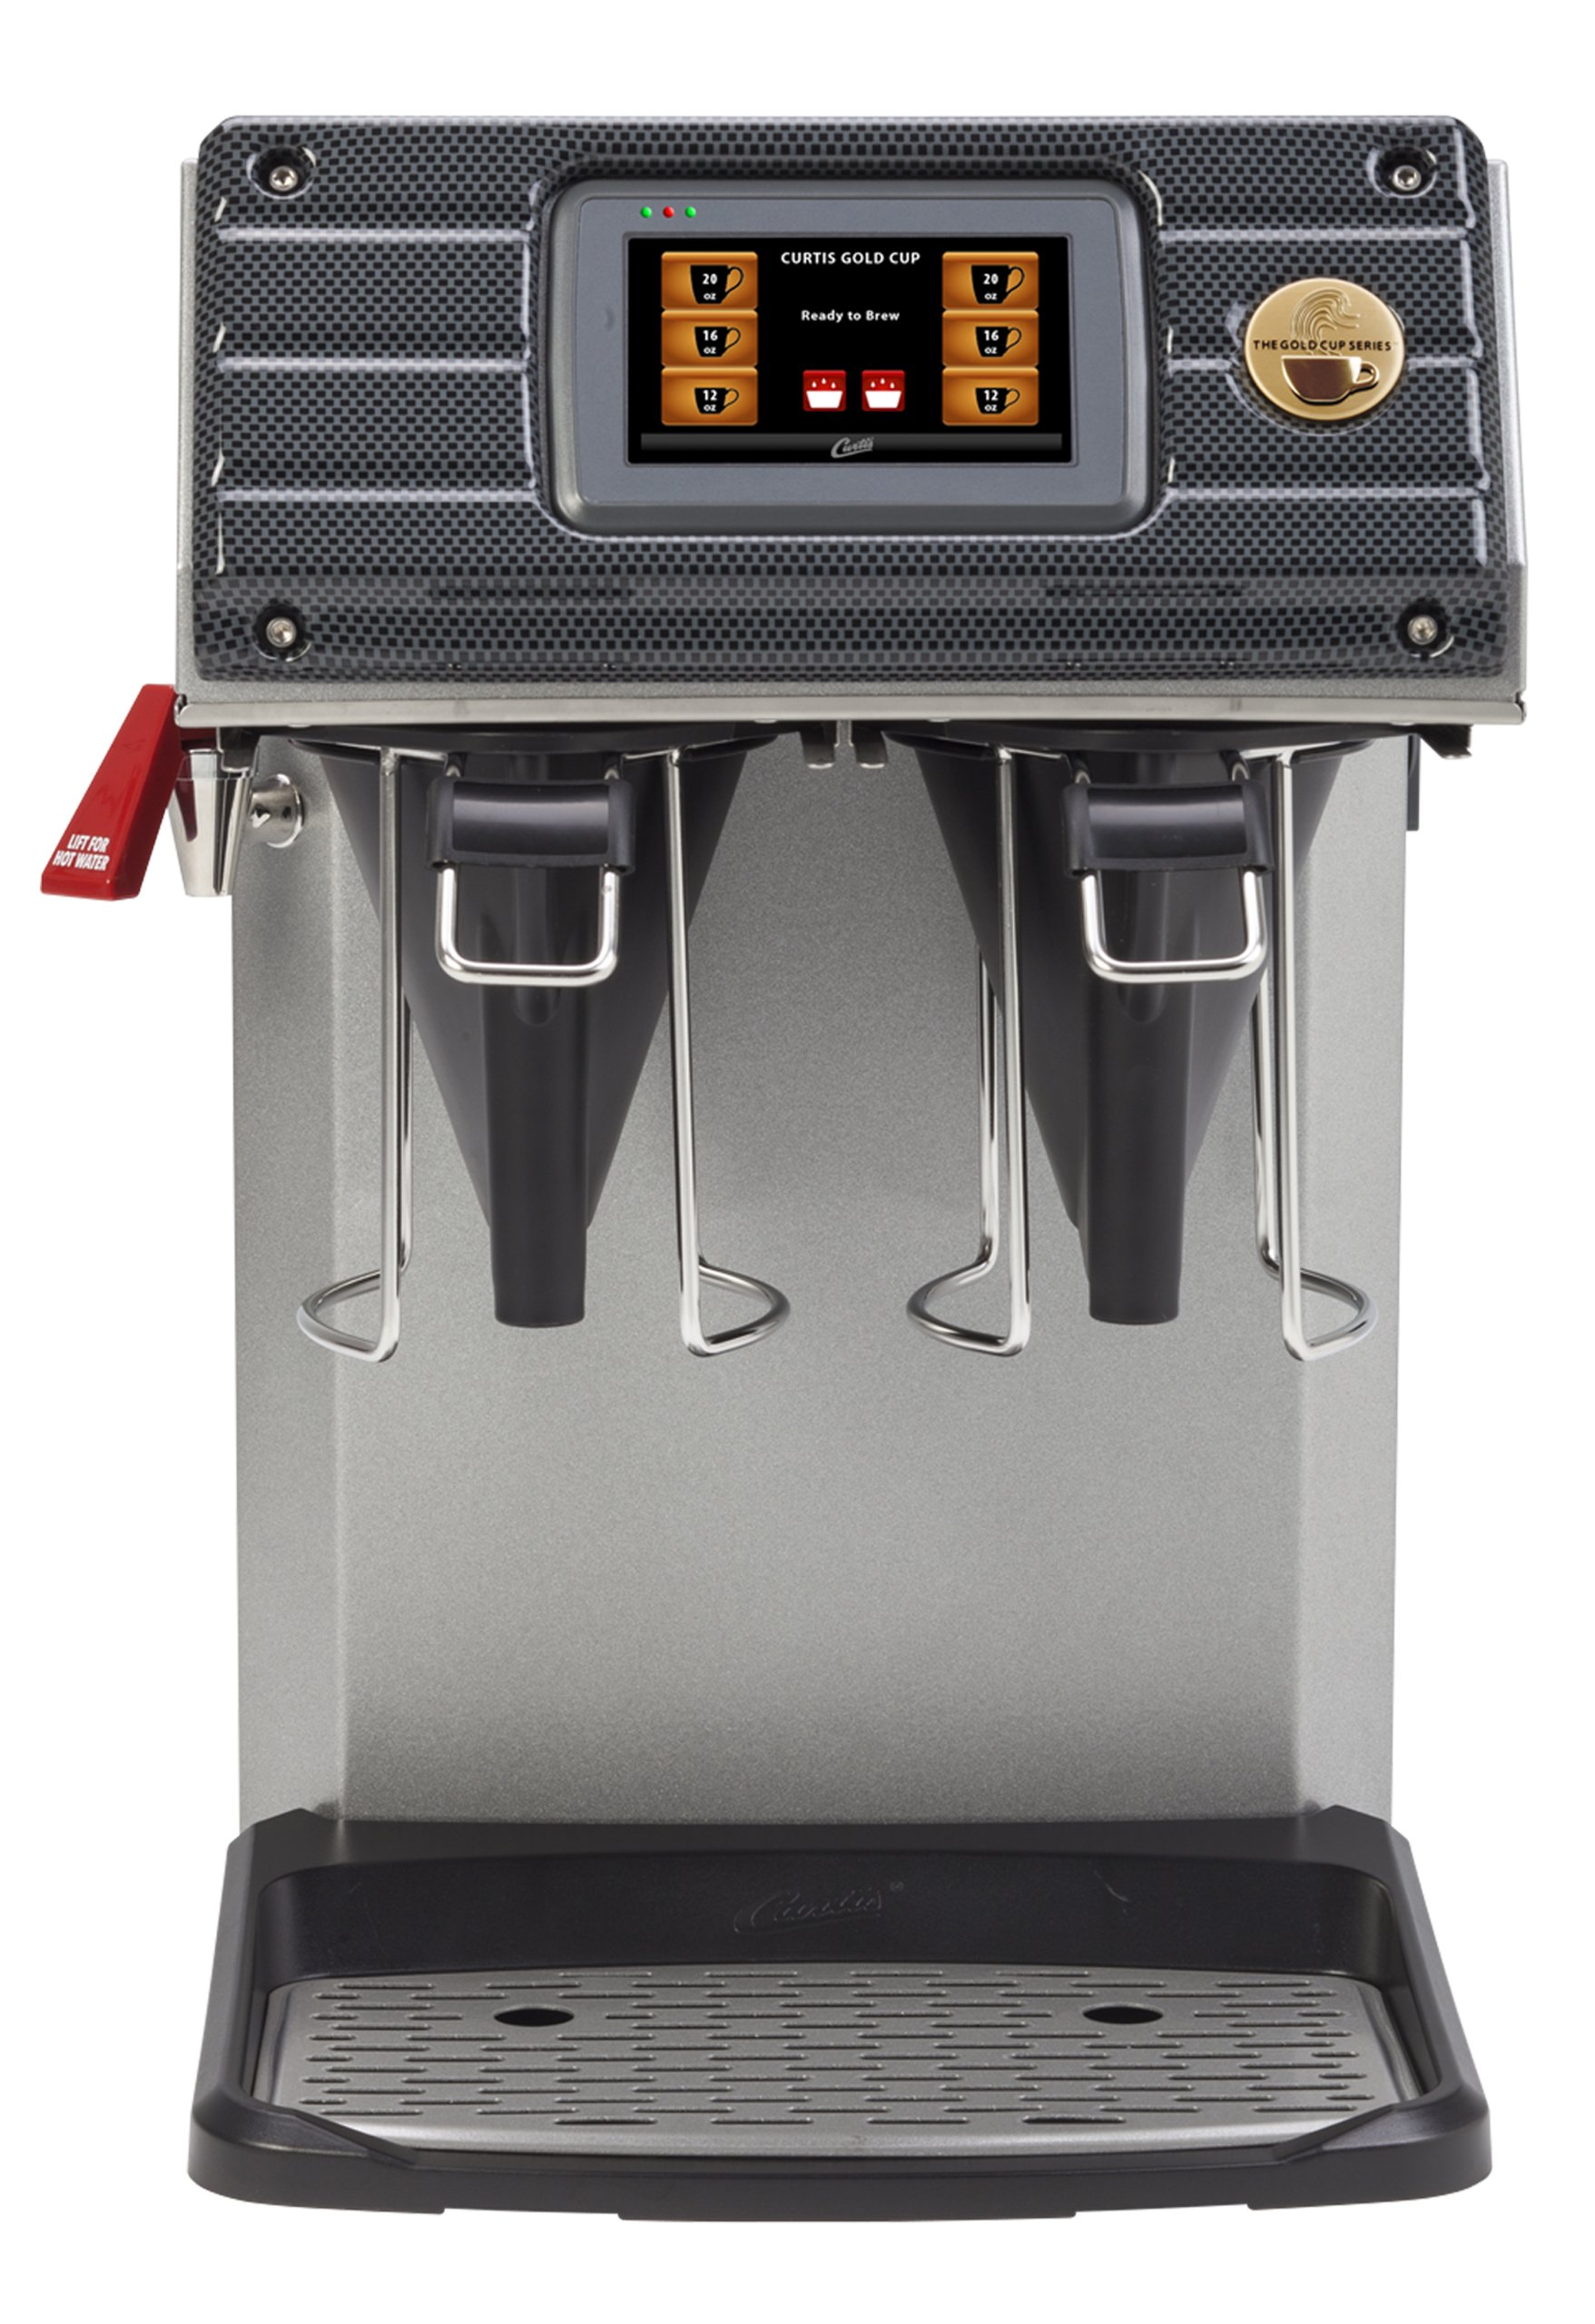 Wilbur Curtis Gold Cup Single Cup Brewer - Commercial Coffee Brewer with Digital Control Module and Self-Diagnostic System for Gourmet Results - CGC (Each)